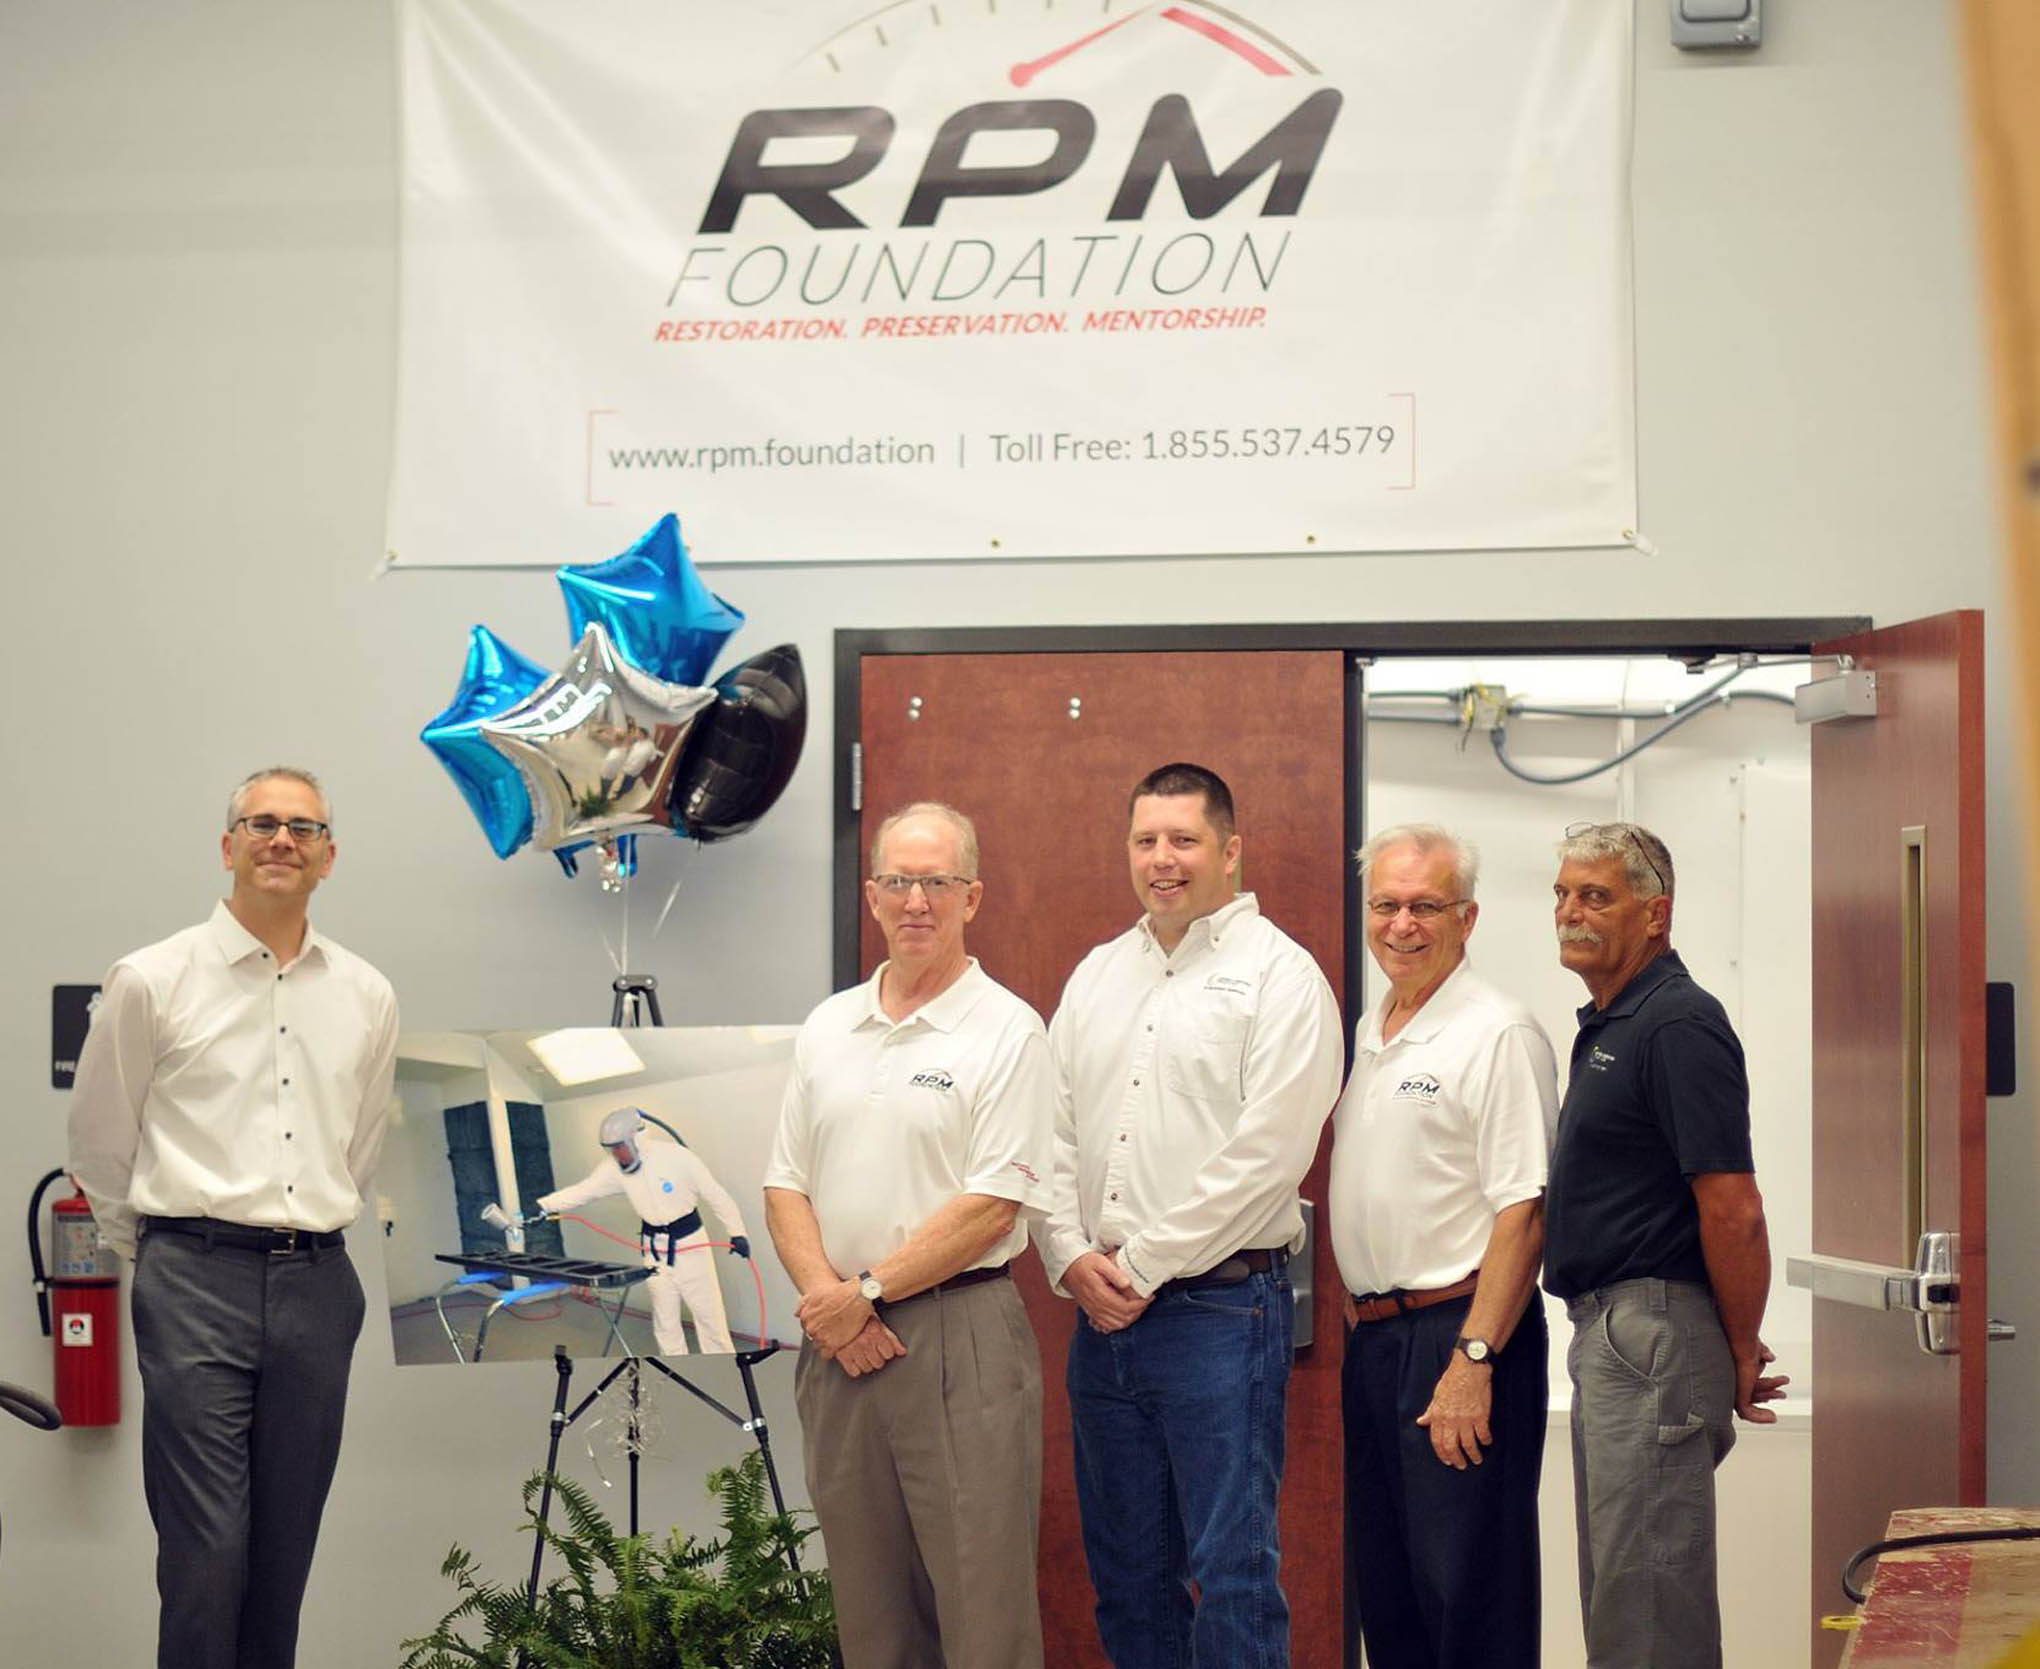 Click to enlarge,  RPM Foundation officials attended the Central Carolina Community College ribbon cutting to celebrate the opening of the West Harnett Center Automotive Restoration Facility on Thursday, Aug. 9.